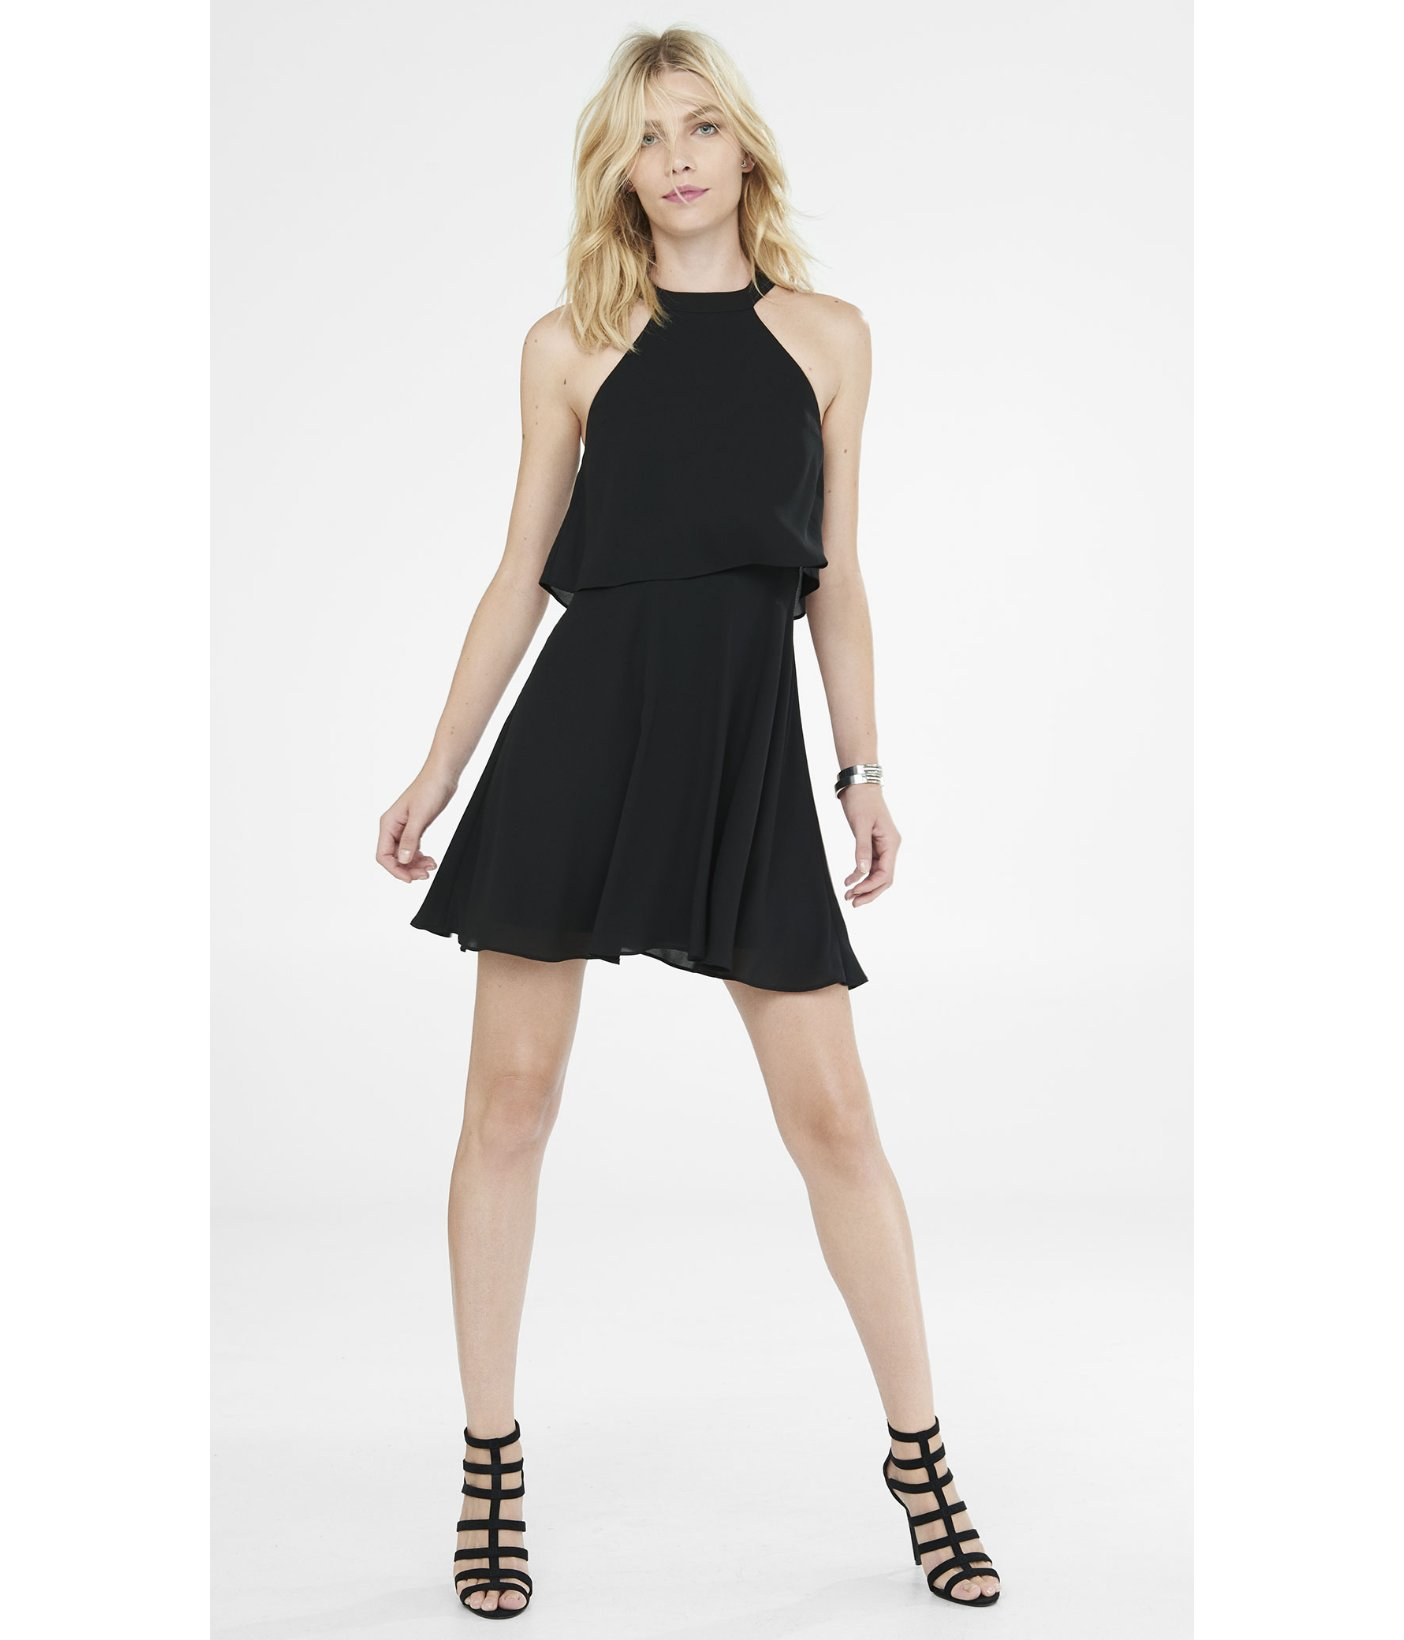 f6b99238921 Express Black High Neck Double Layer Fit And Flare Dress